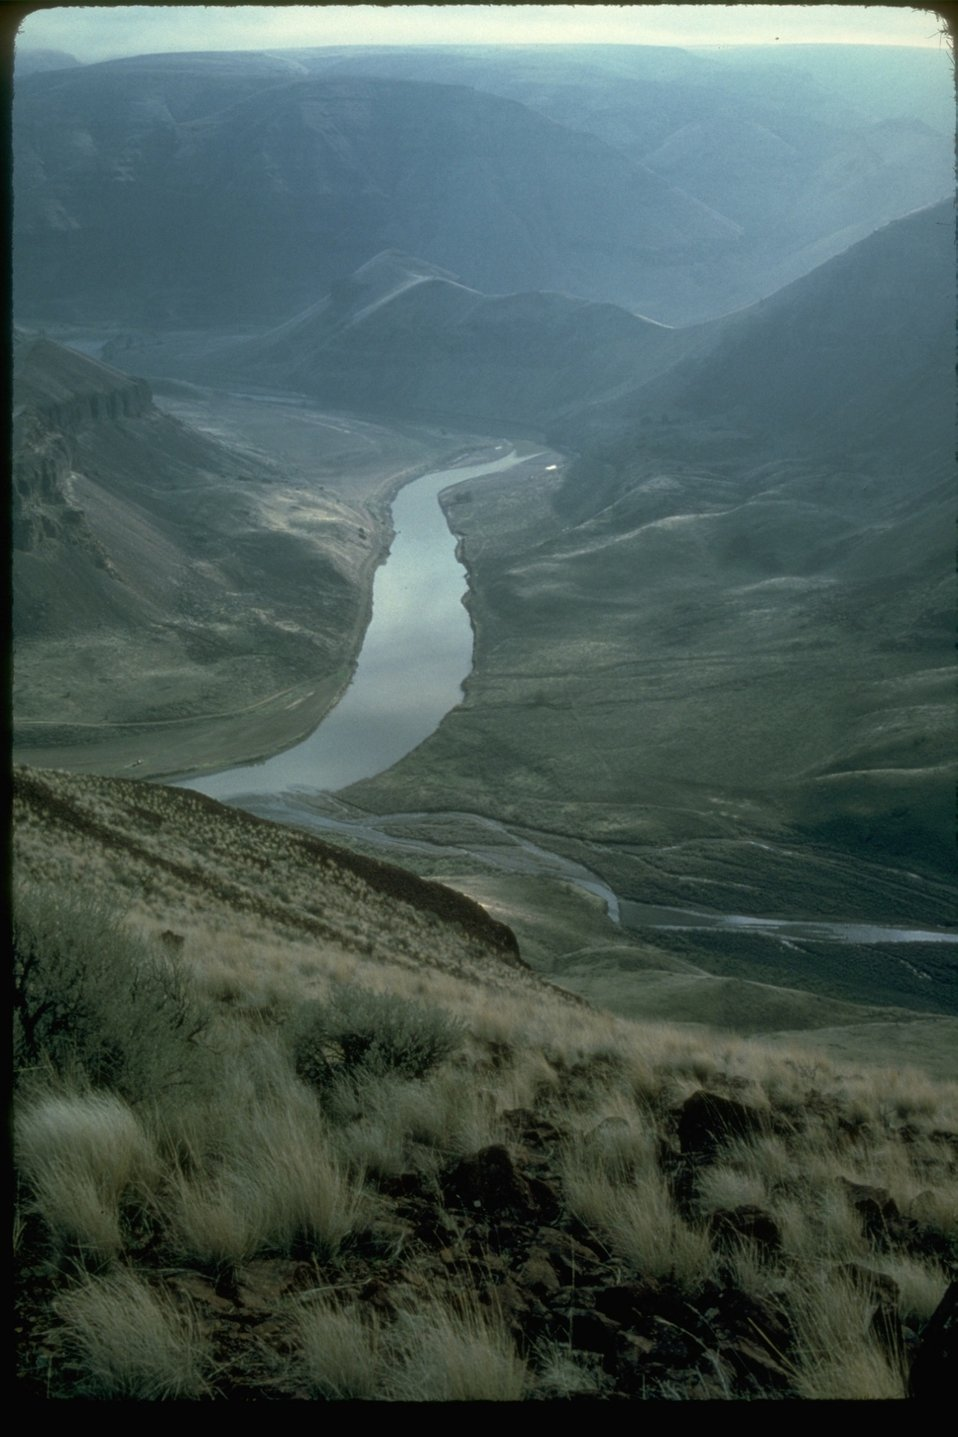 A scenic picture of the John Day River.